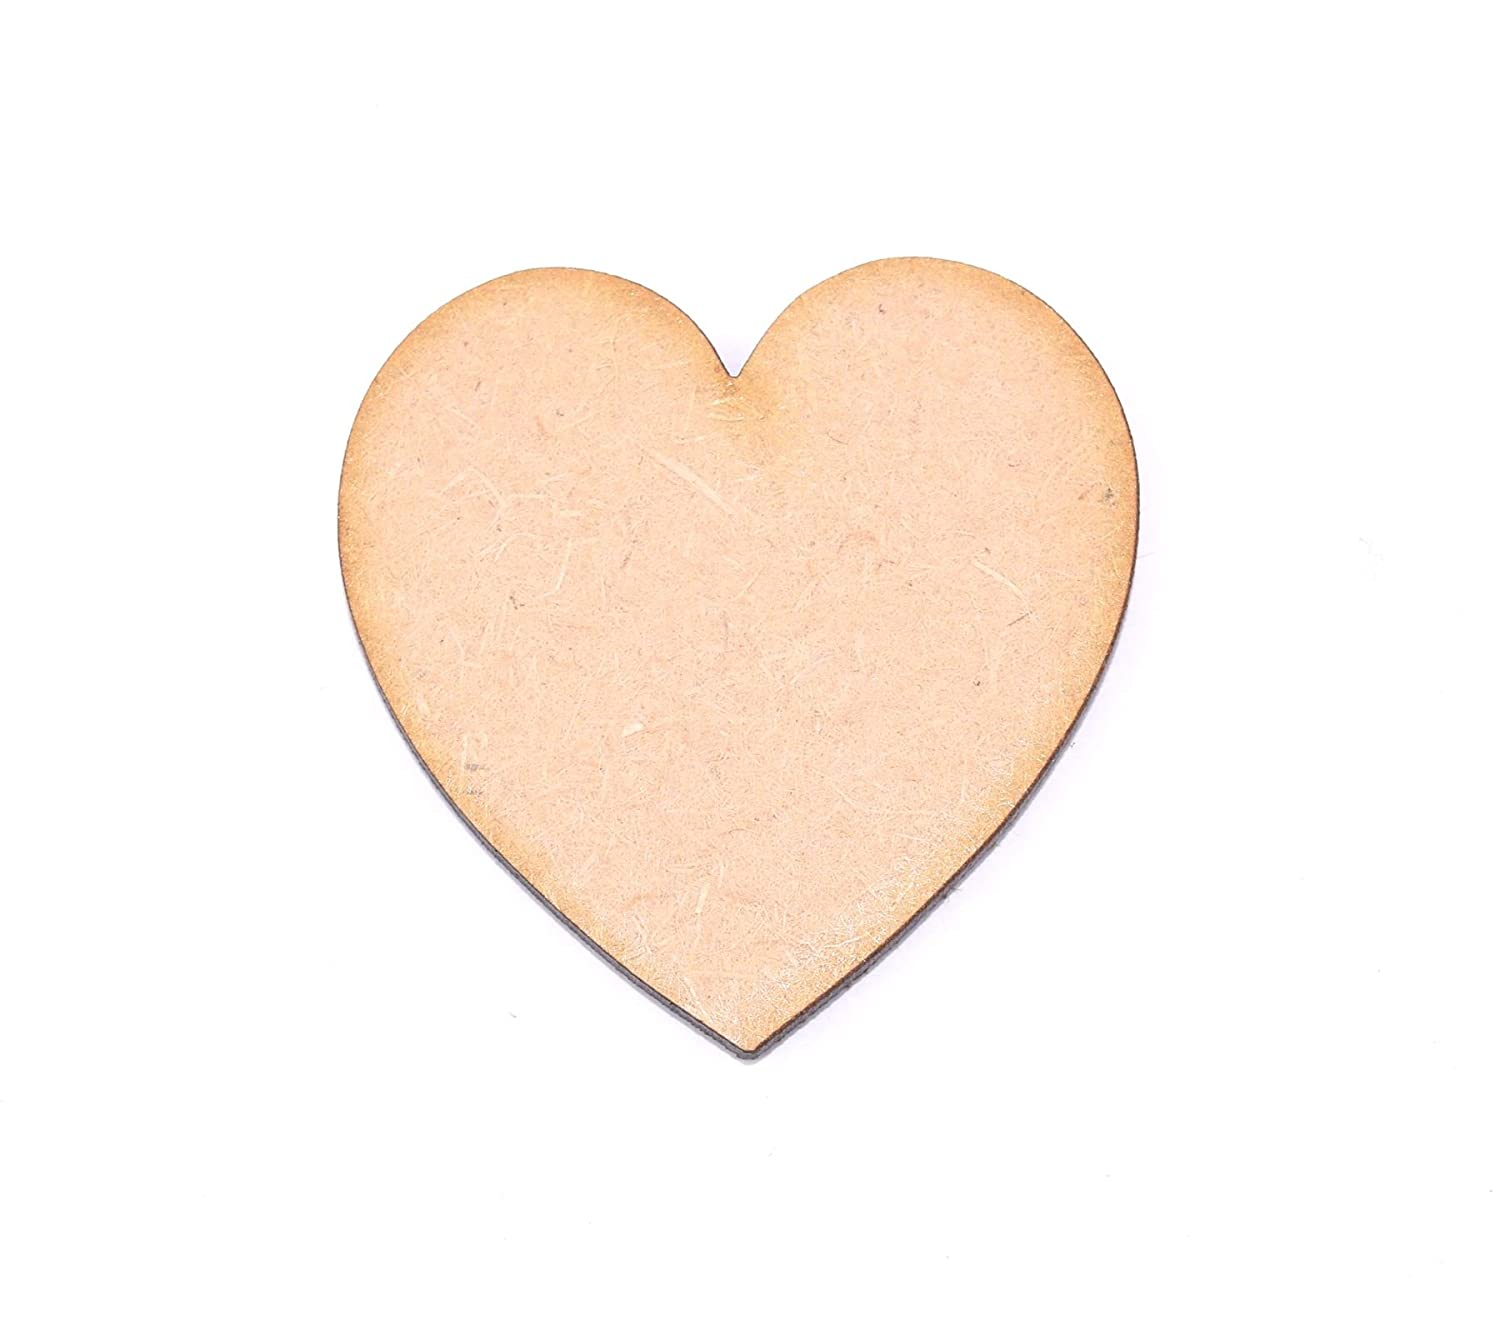 Pack of 10 MDF 40mm Hearts by WWS - Arts & Crafts, Scrapbooks, Decorations